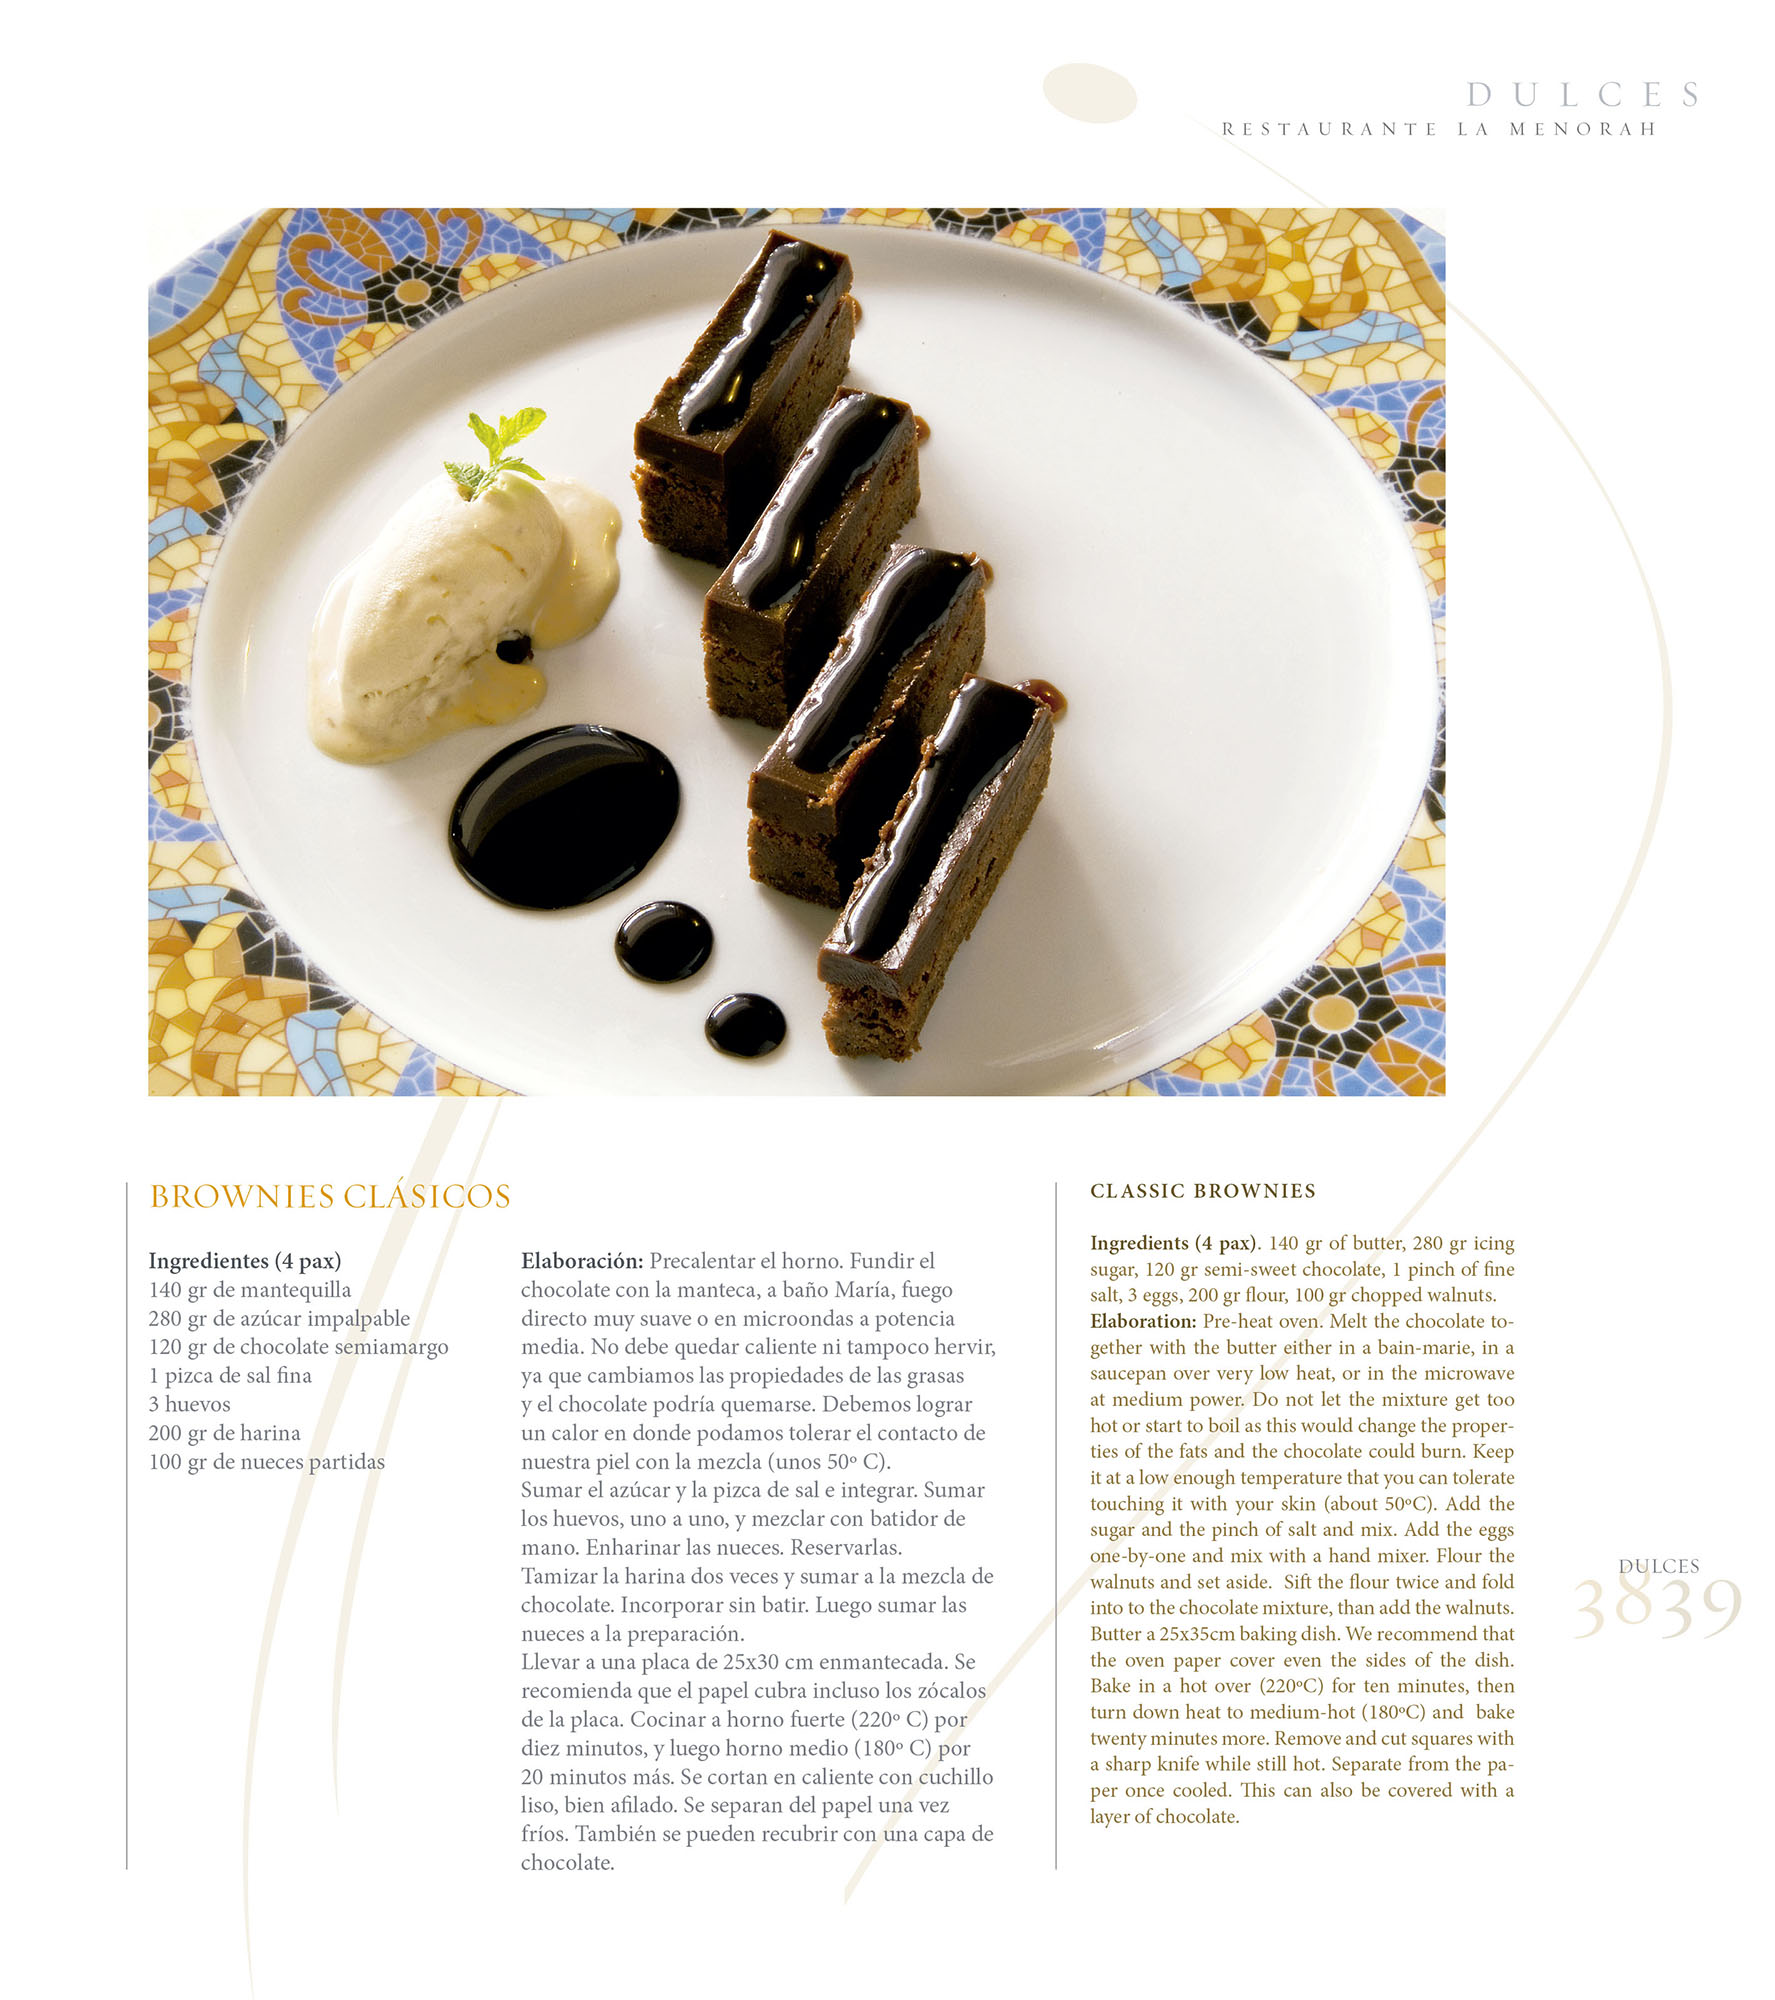 Dulce - Restaurante La Menorah | Revista ORO | jun 2009